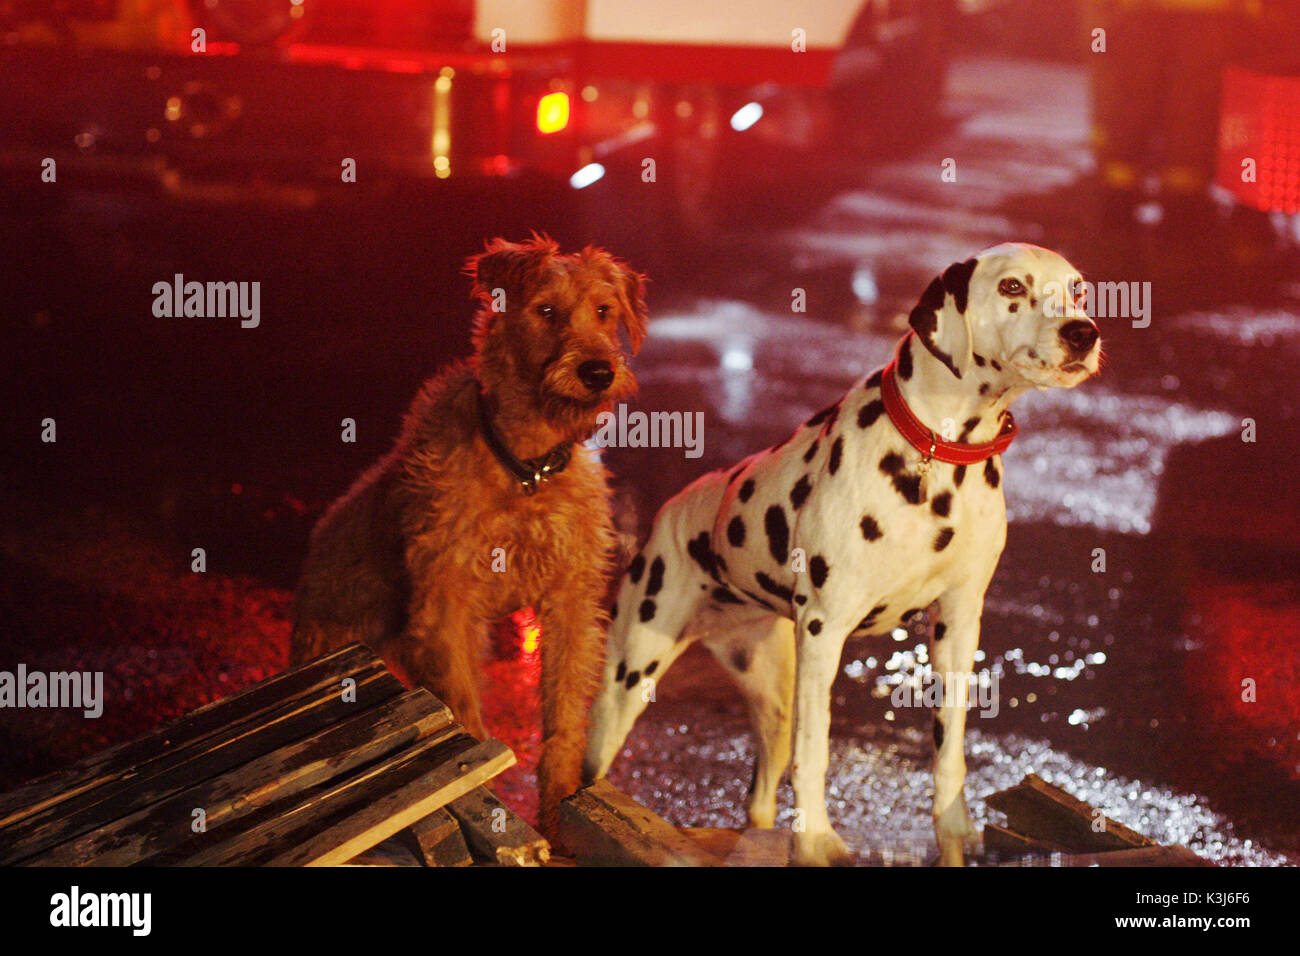 Firehouse Dog For Further Information Please Contact Your Local Twentieth Century Fox Press Office FIREHOUSE